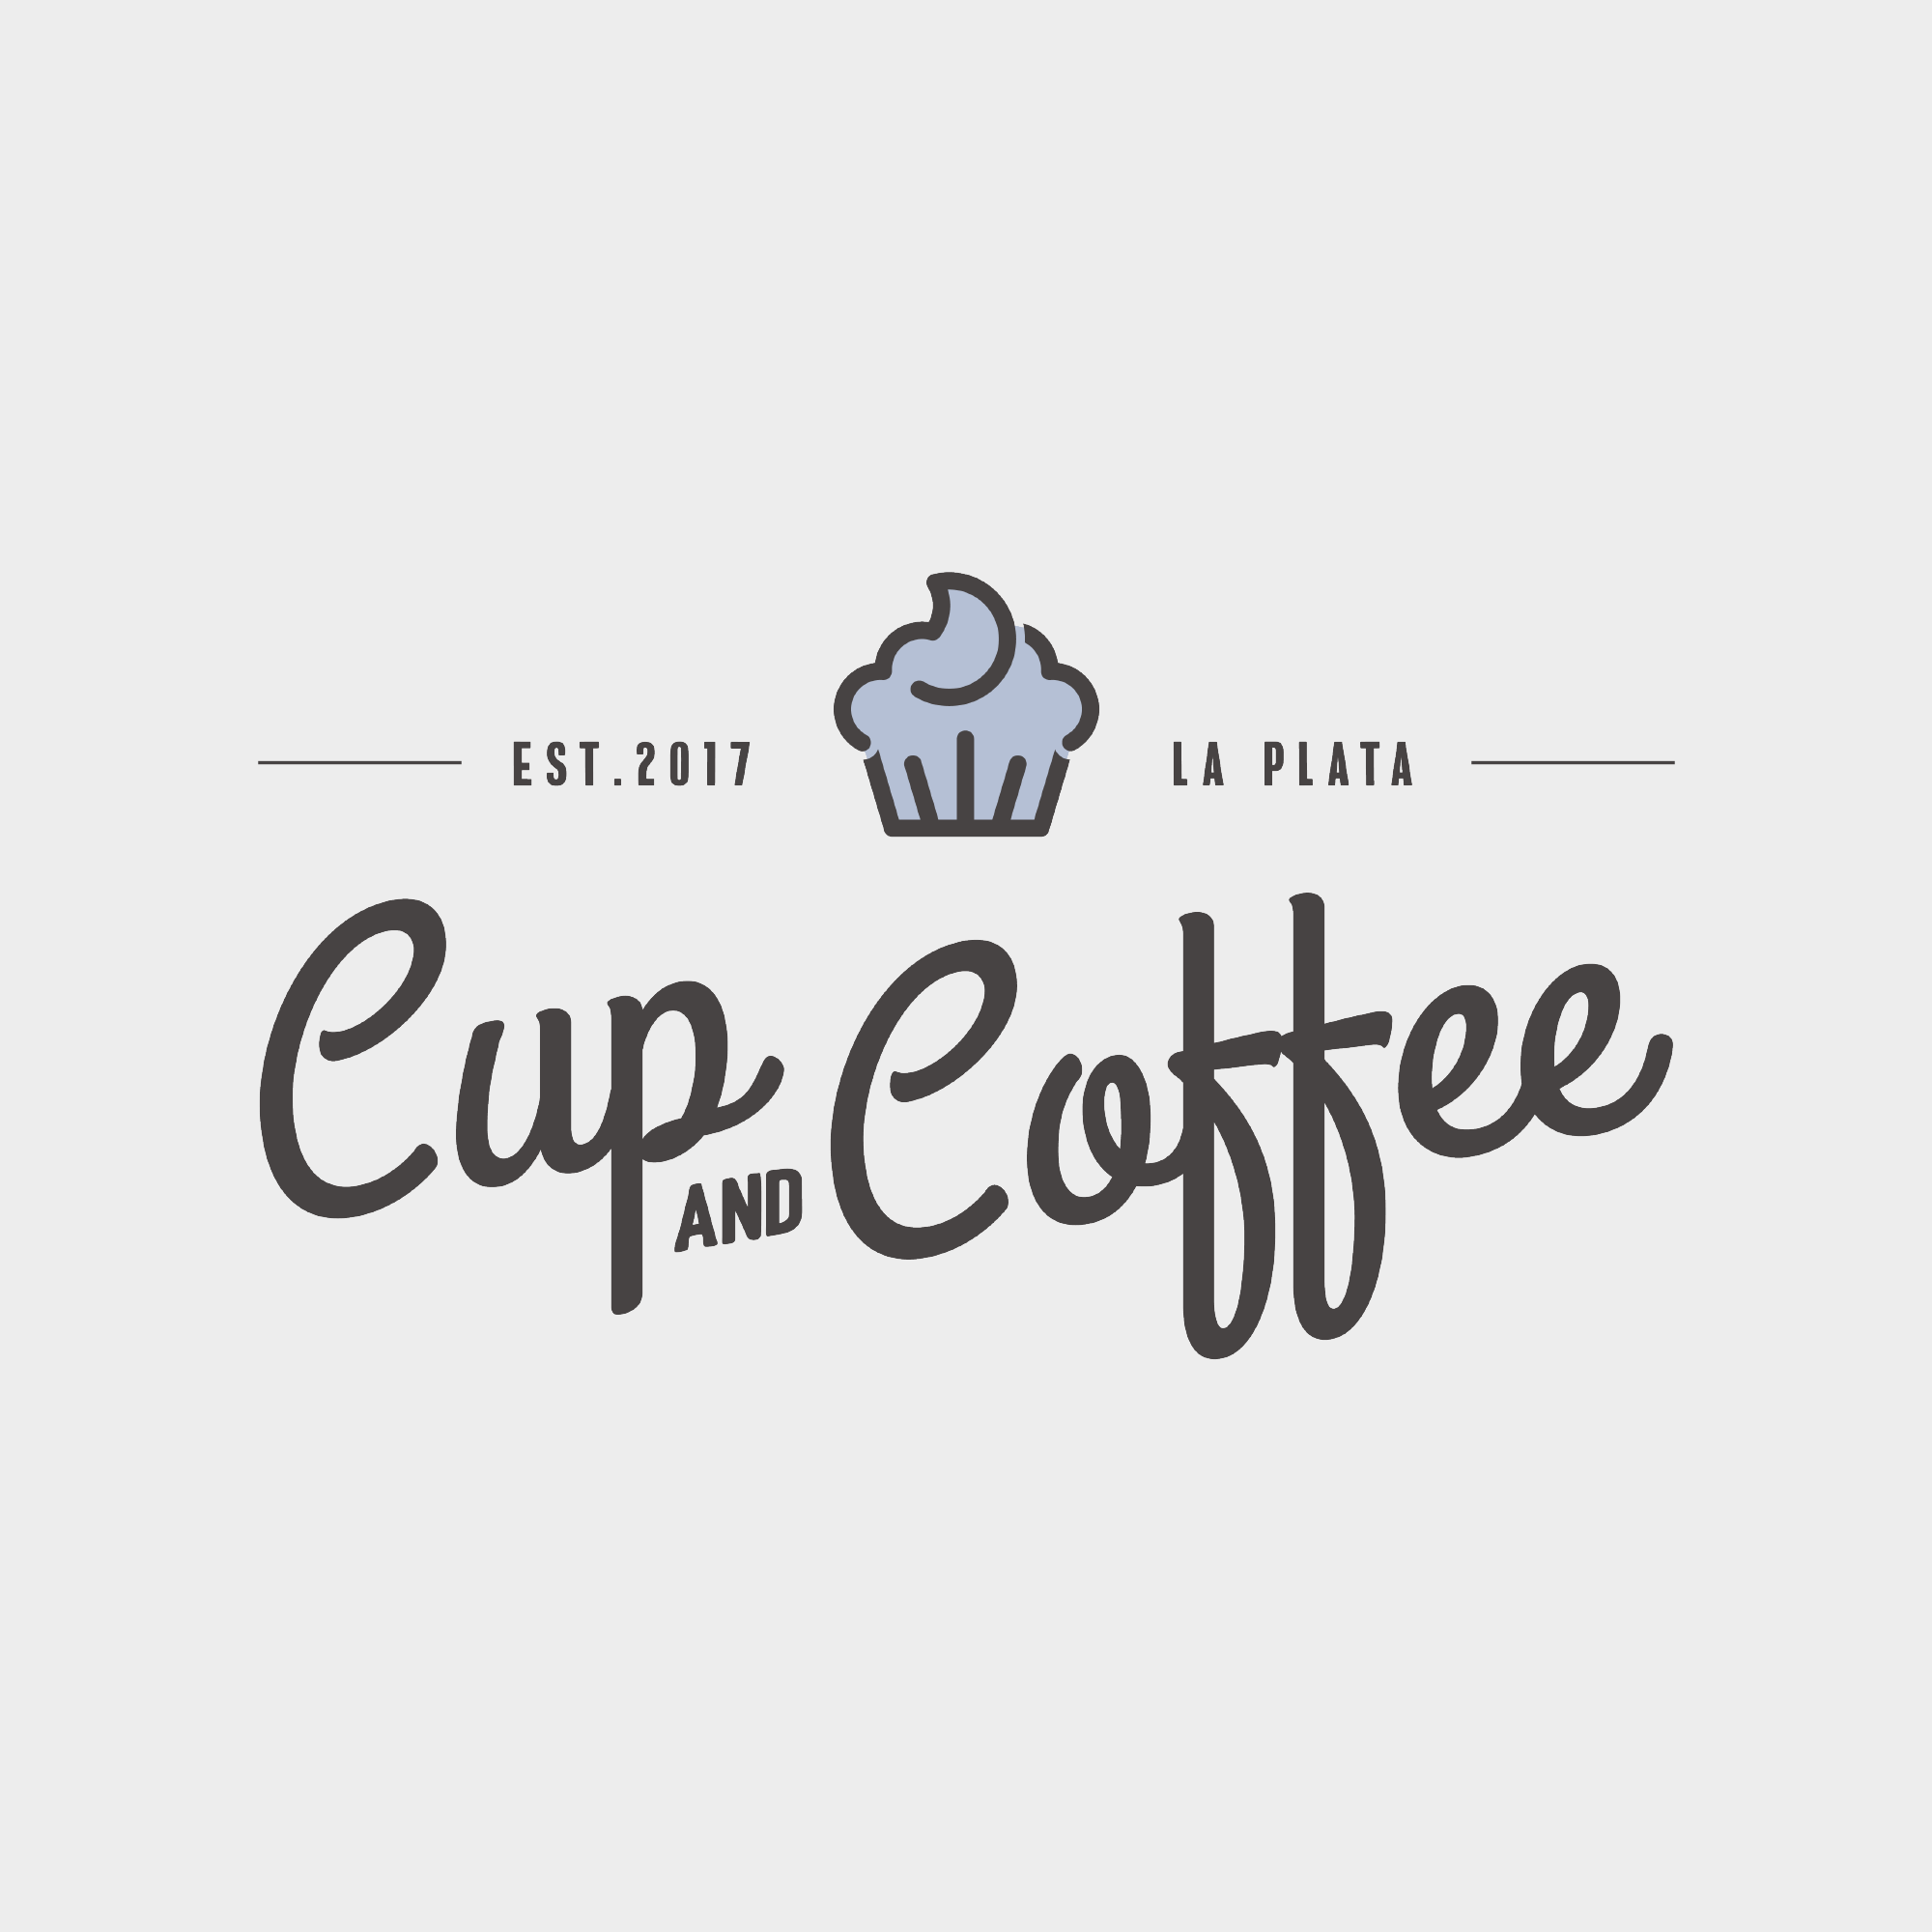 cup-and-coffee-logo-03